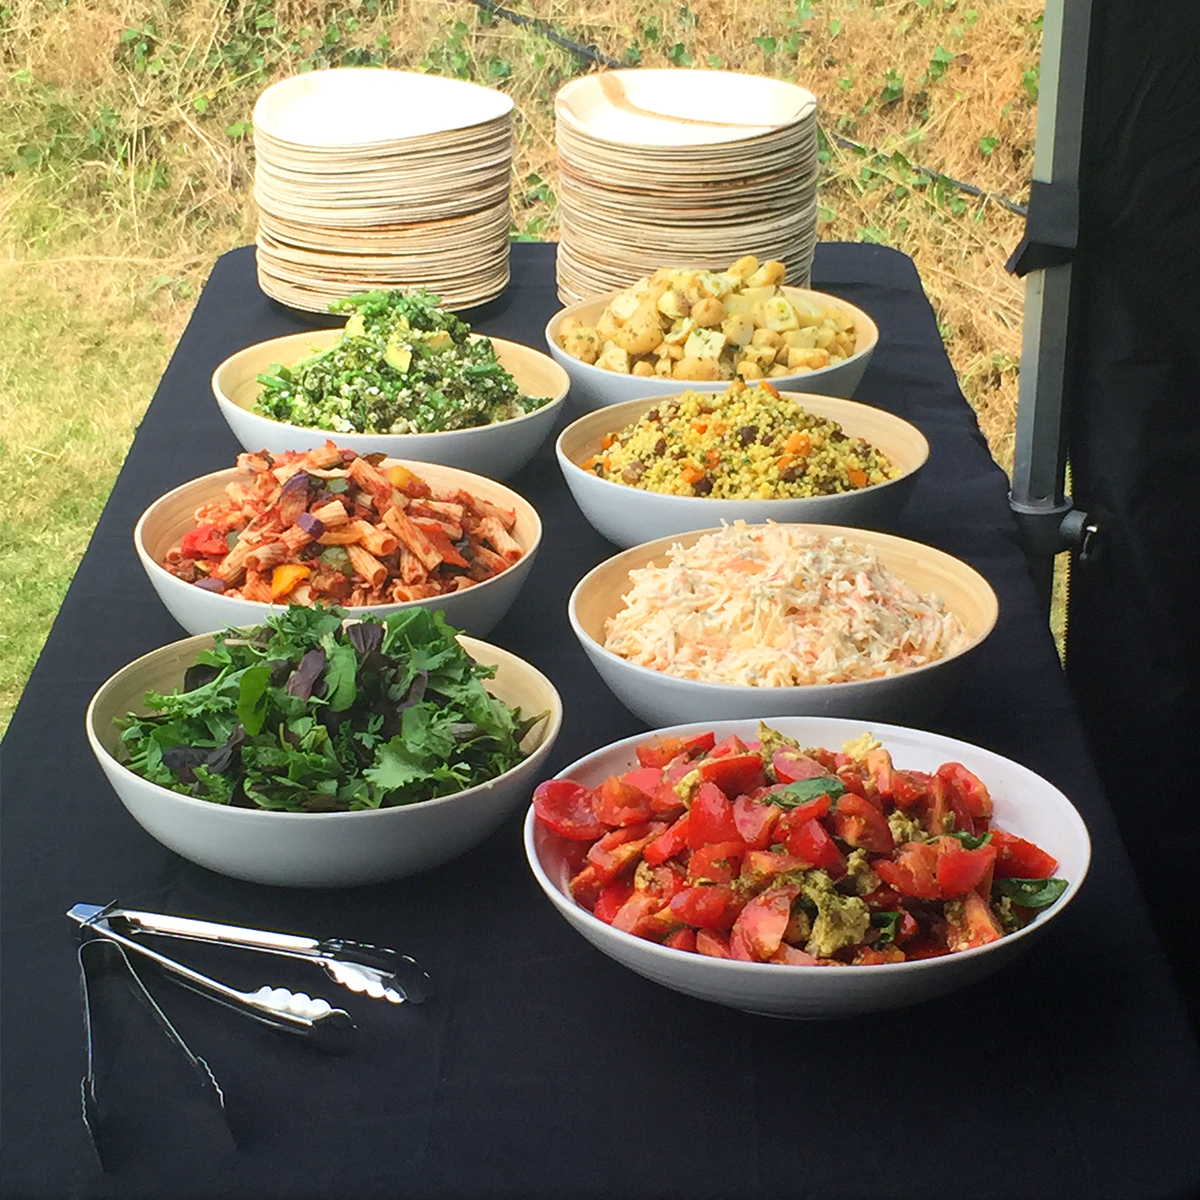 Full selection of delicious salads freshly prepared so you don't have to!